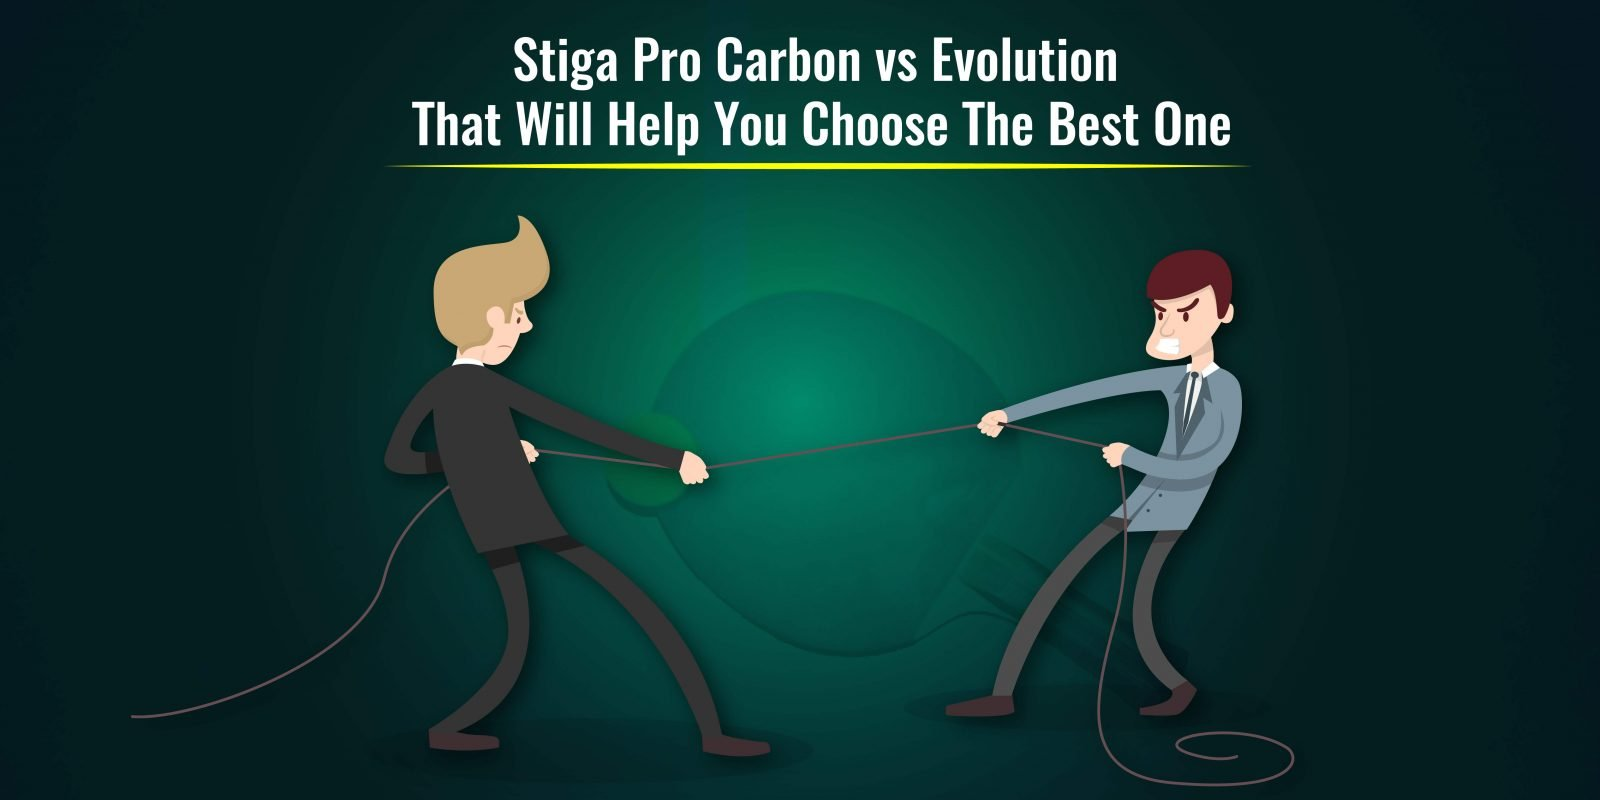 stiga pro carbon vs evolution